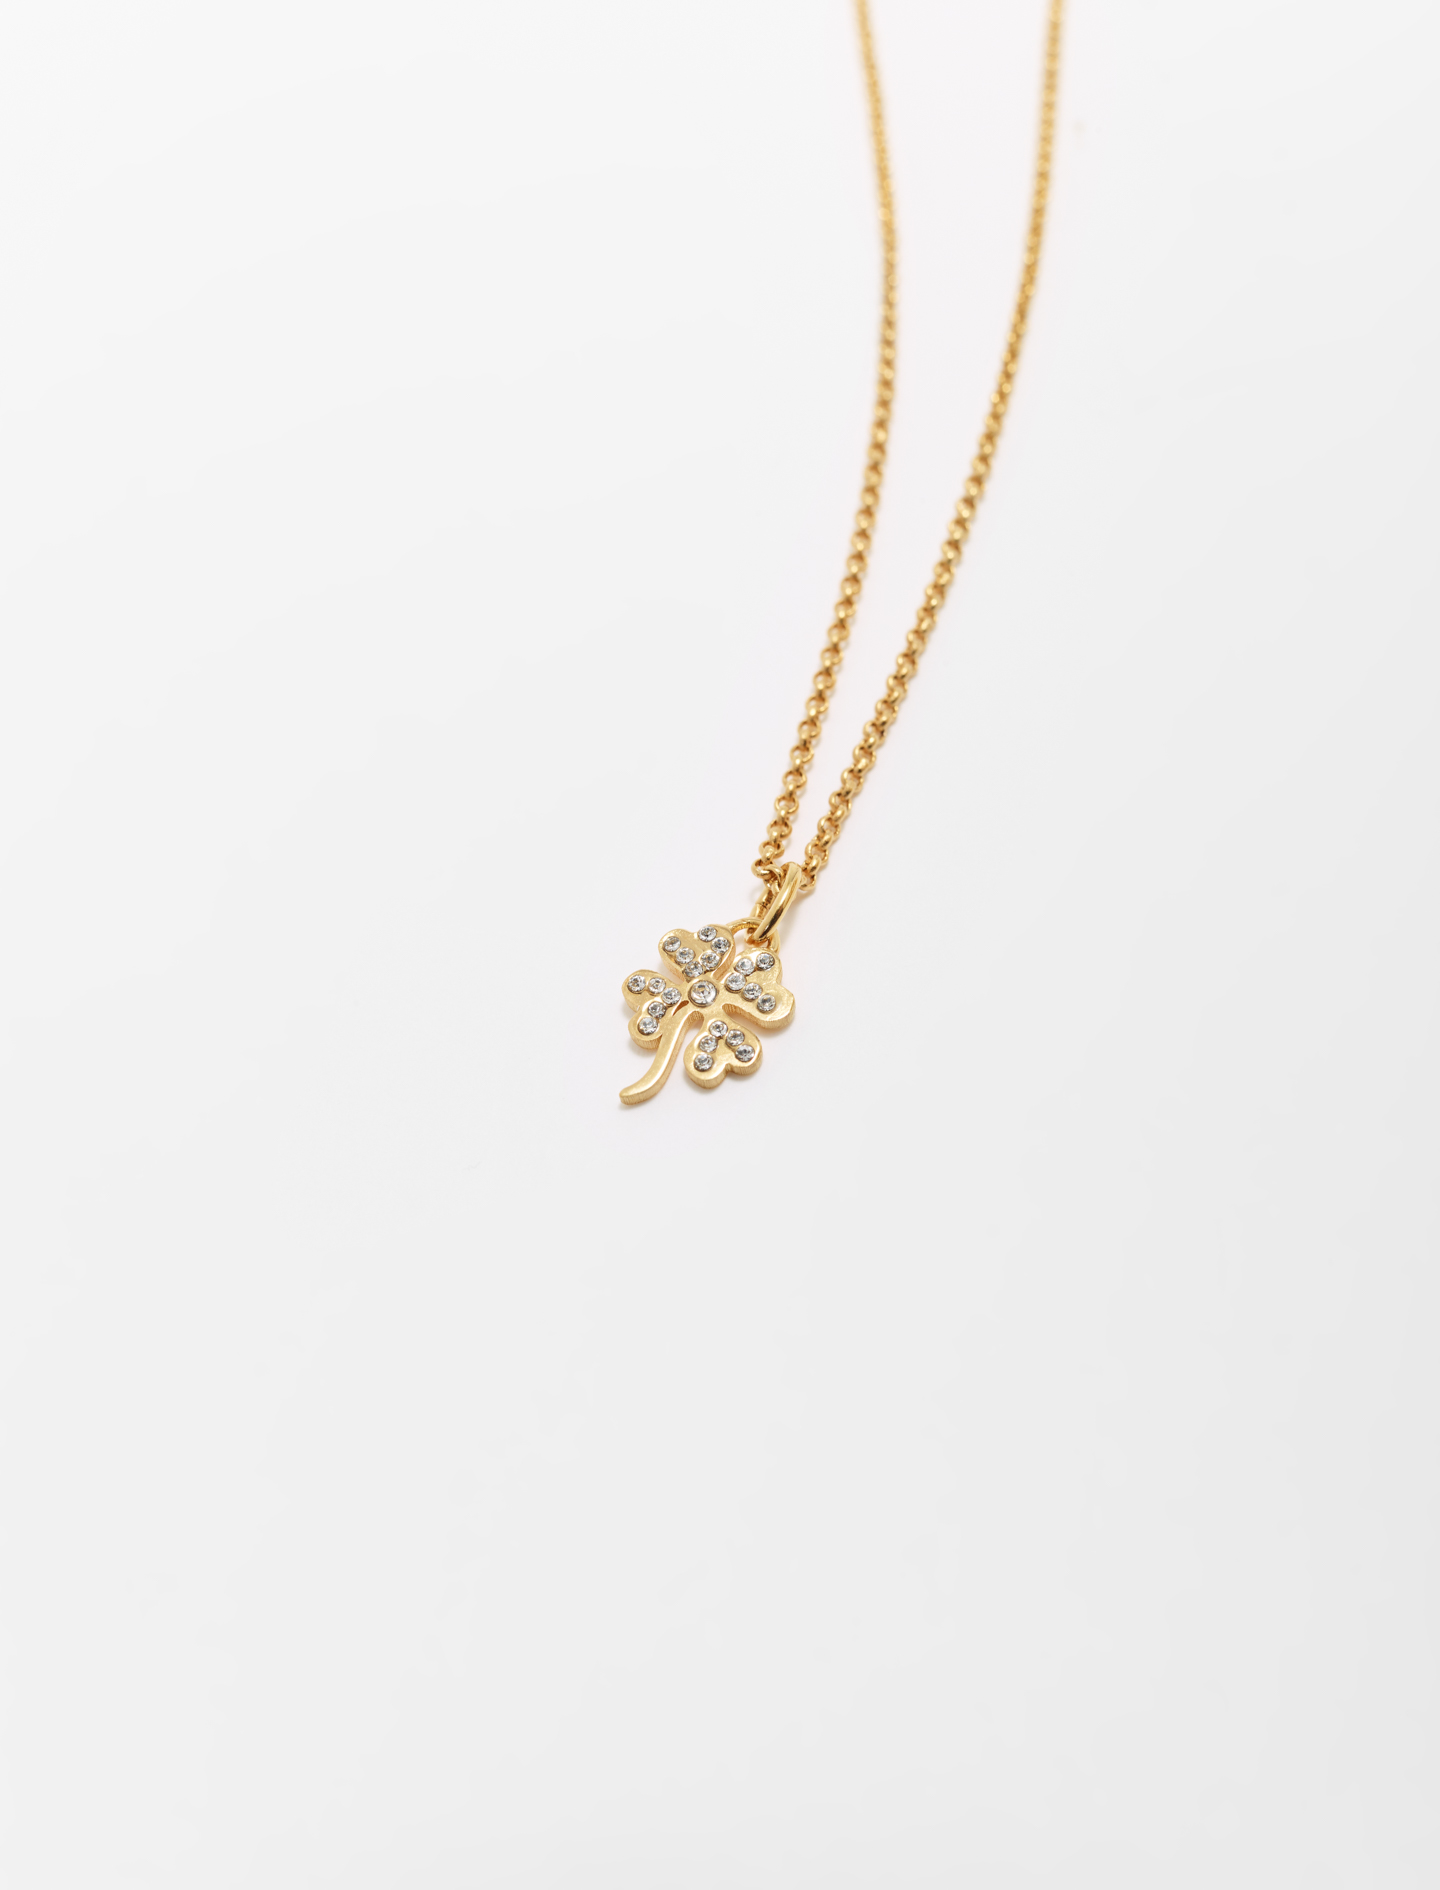 Clover pendant with chain - Gold